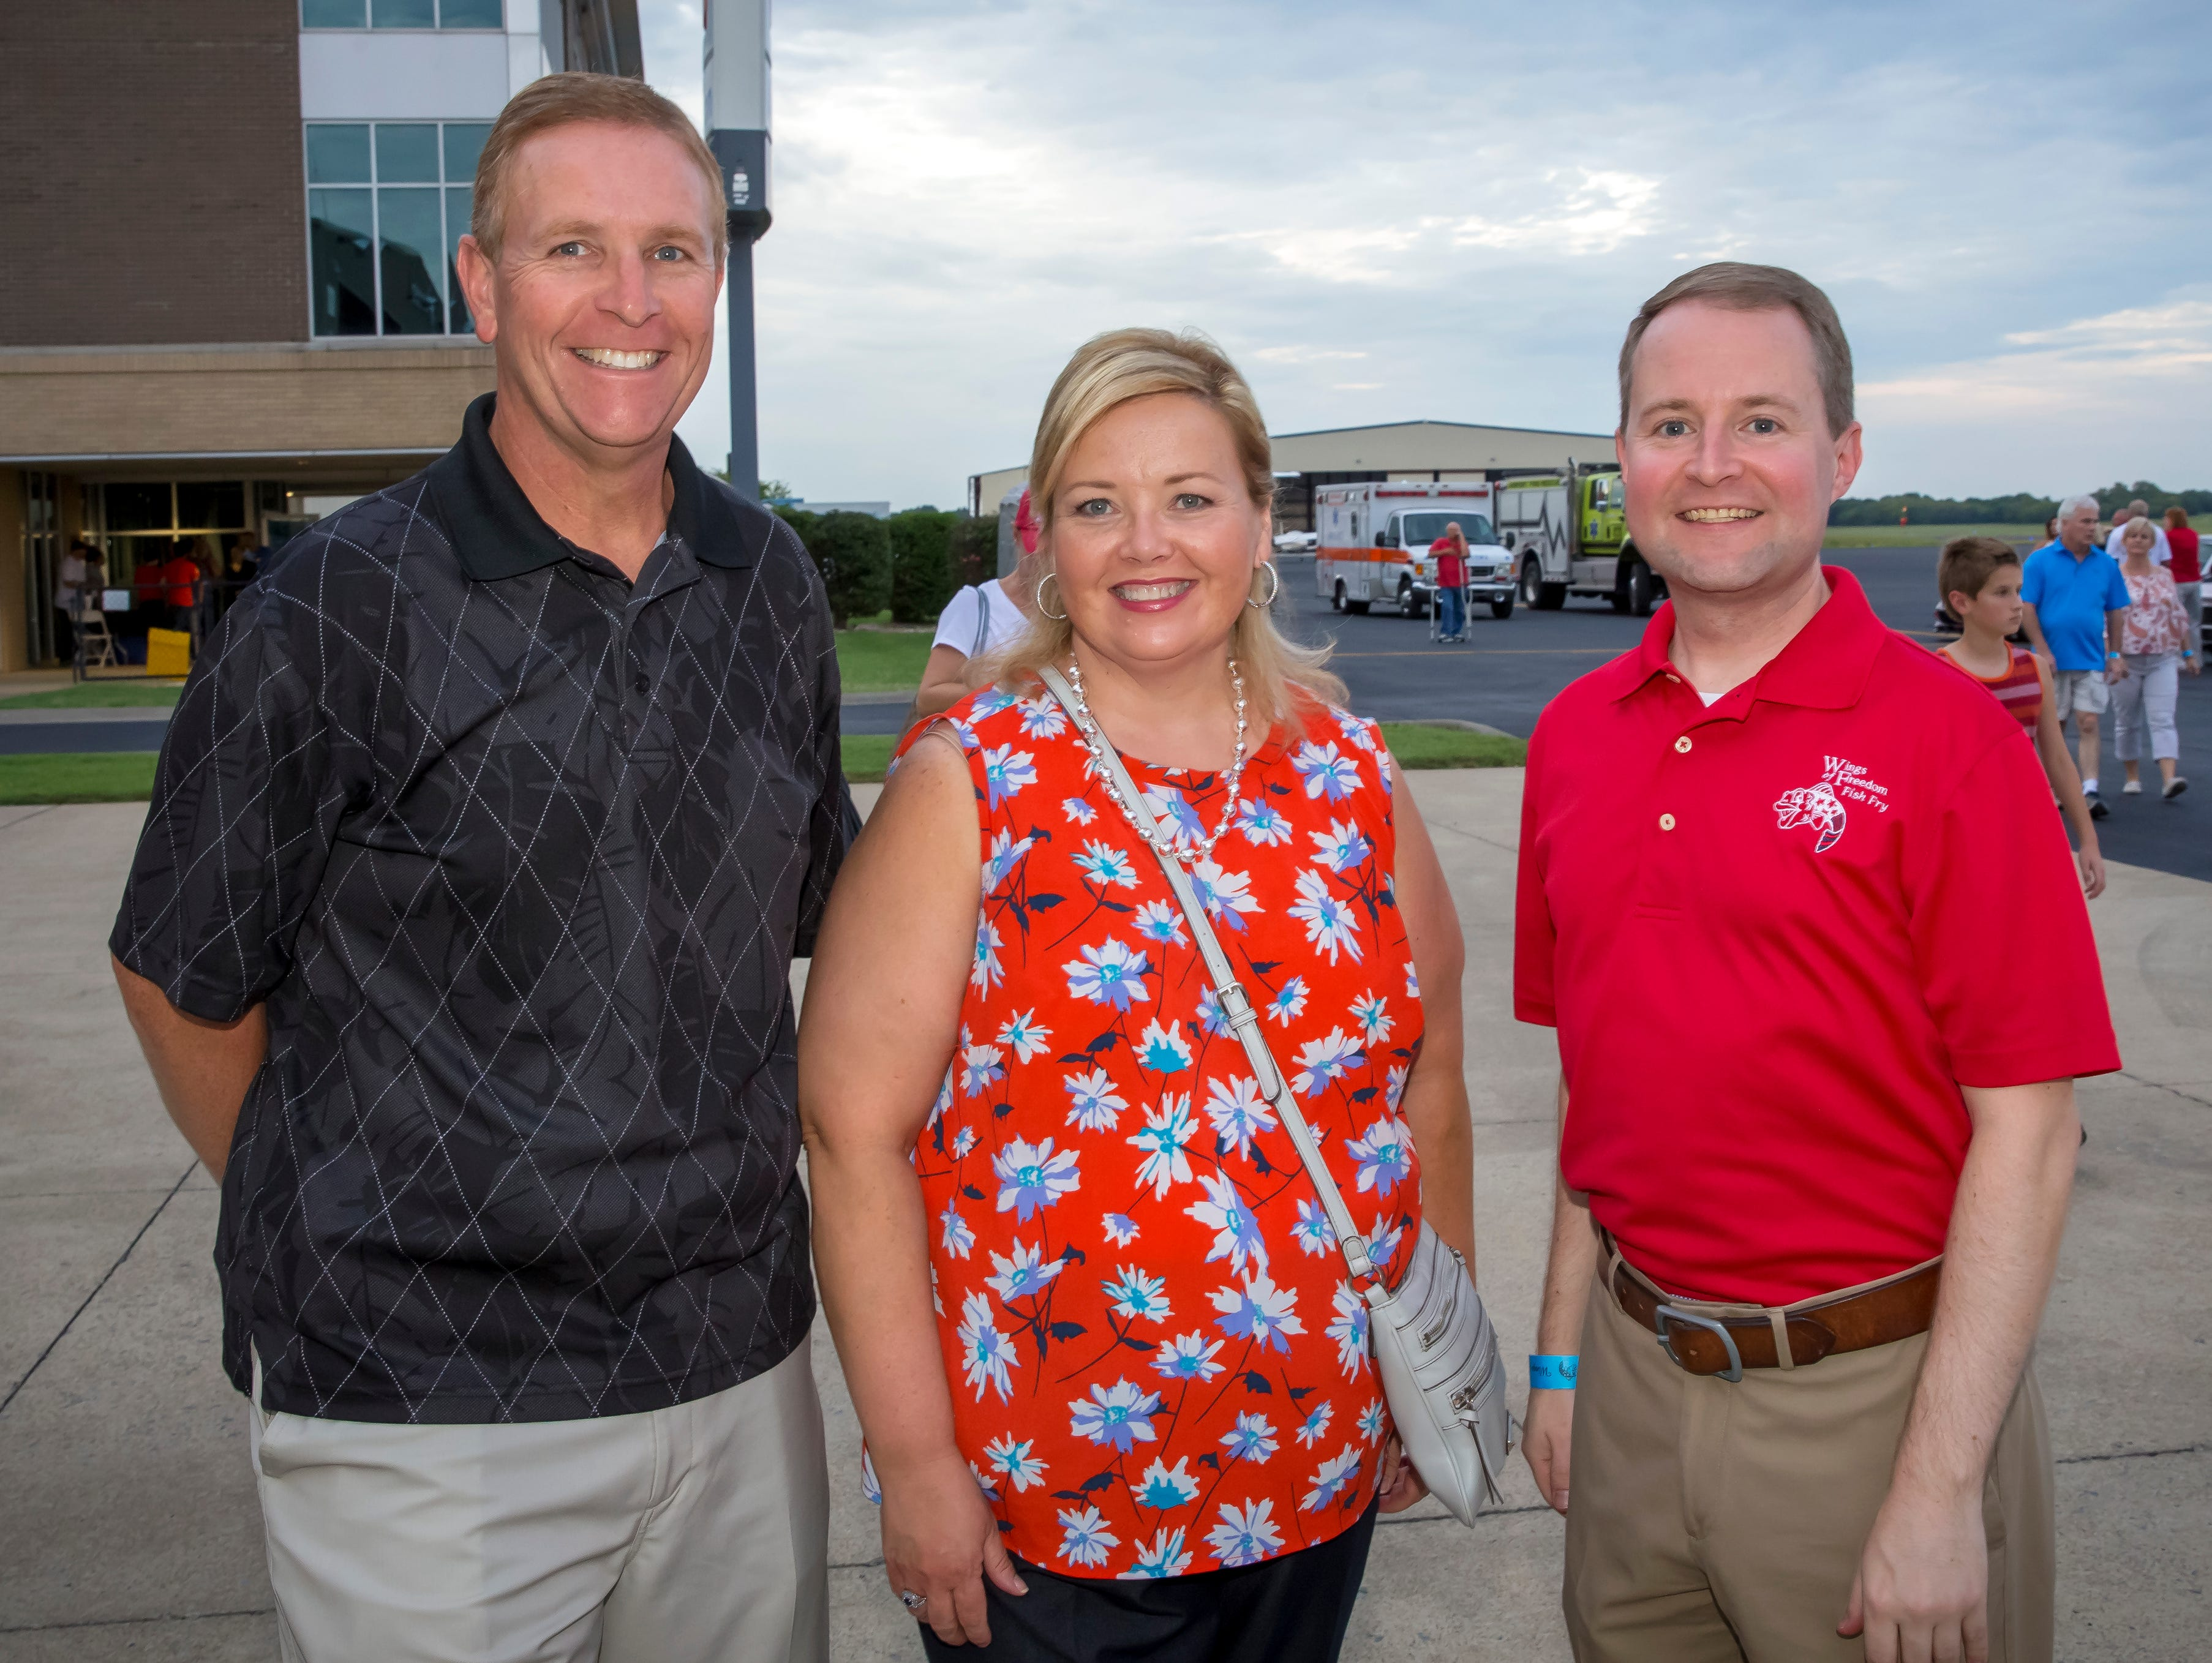 Mike and Rhonda Allen along with Robert Stevens at the Wings of Freedom Fish Fry hosted by Smyrna Rotary Club. The event was held Saturday, Sept. 8, 2018 at the Corporate Flight Management Hangar at Smyrna Airport.